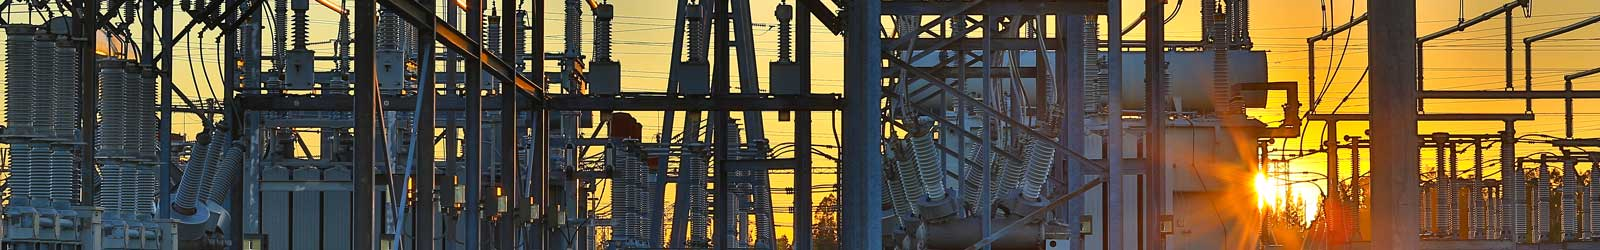 Sunset at a substation with electrical equipment in the foreground.